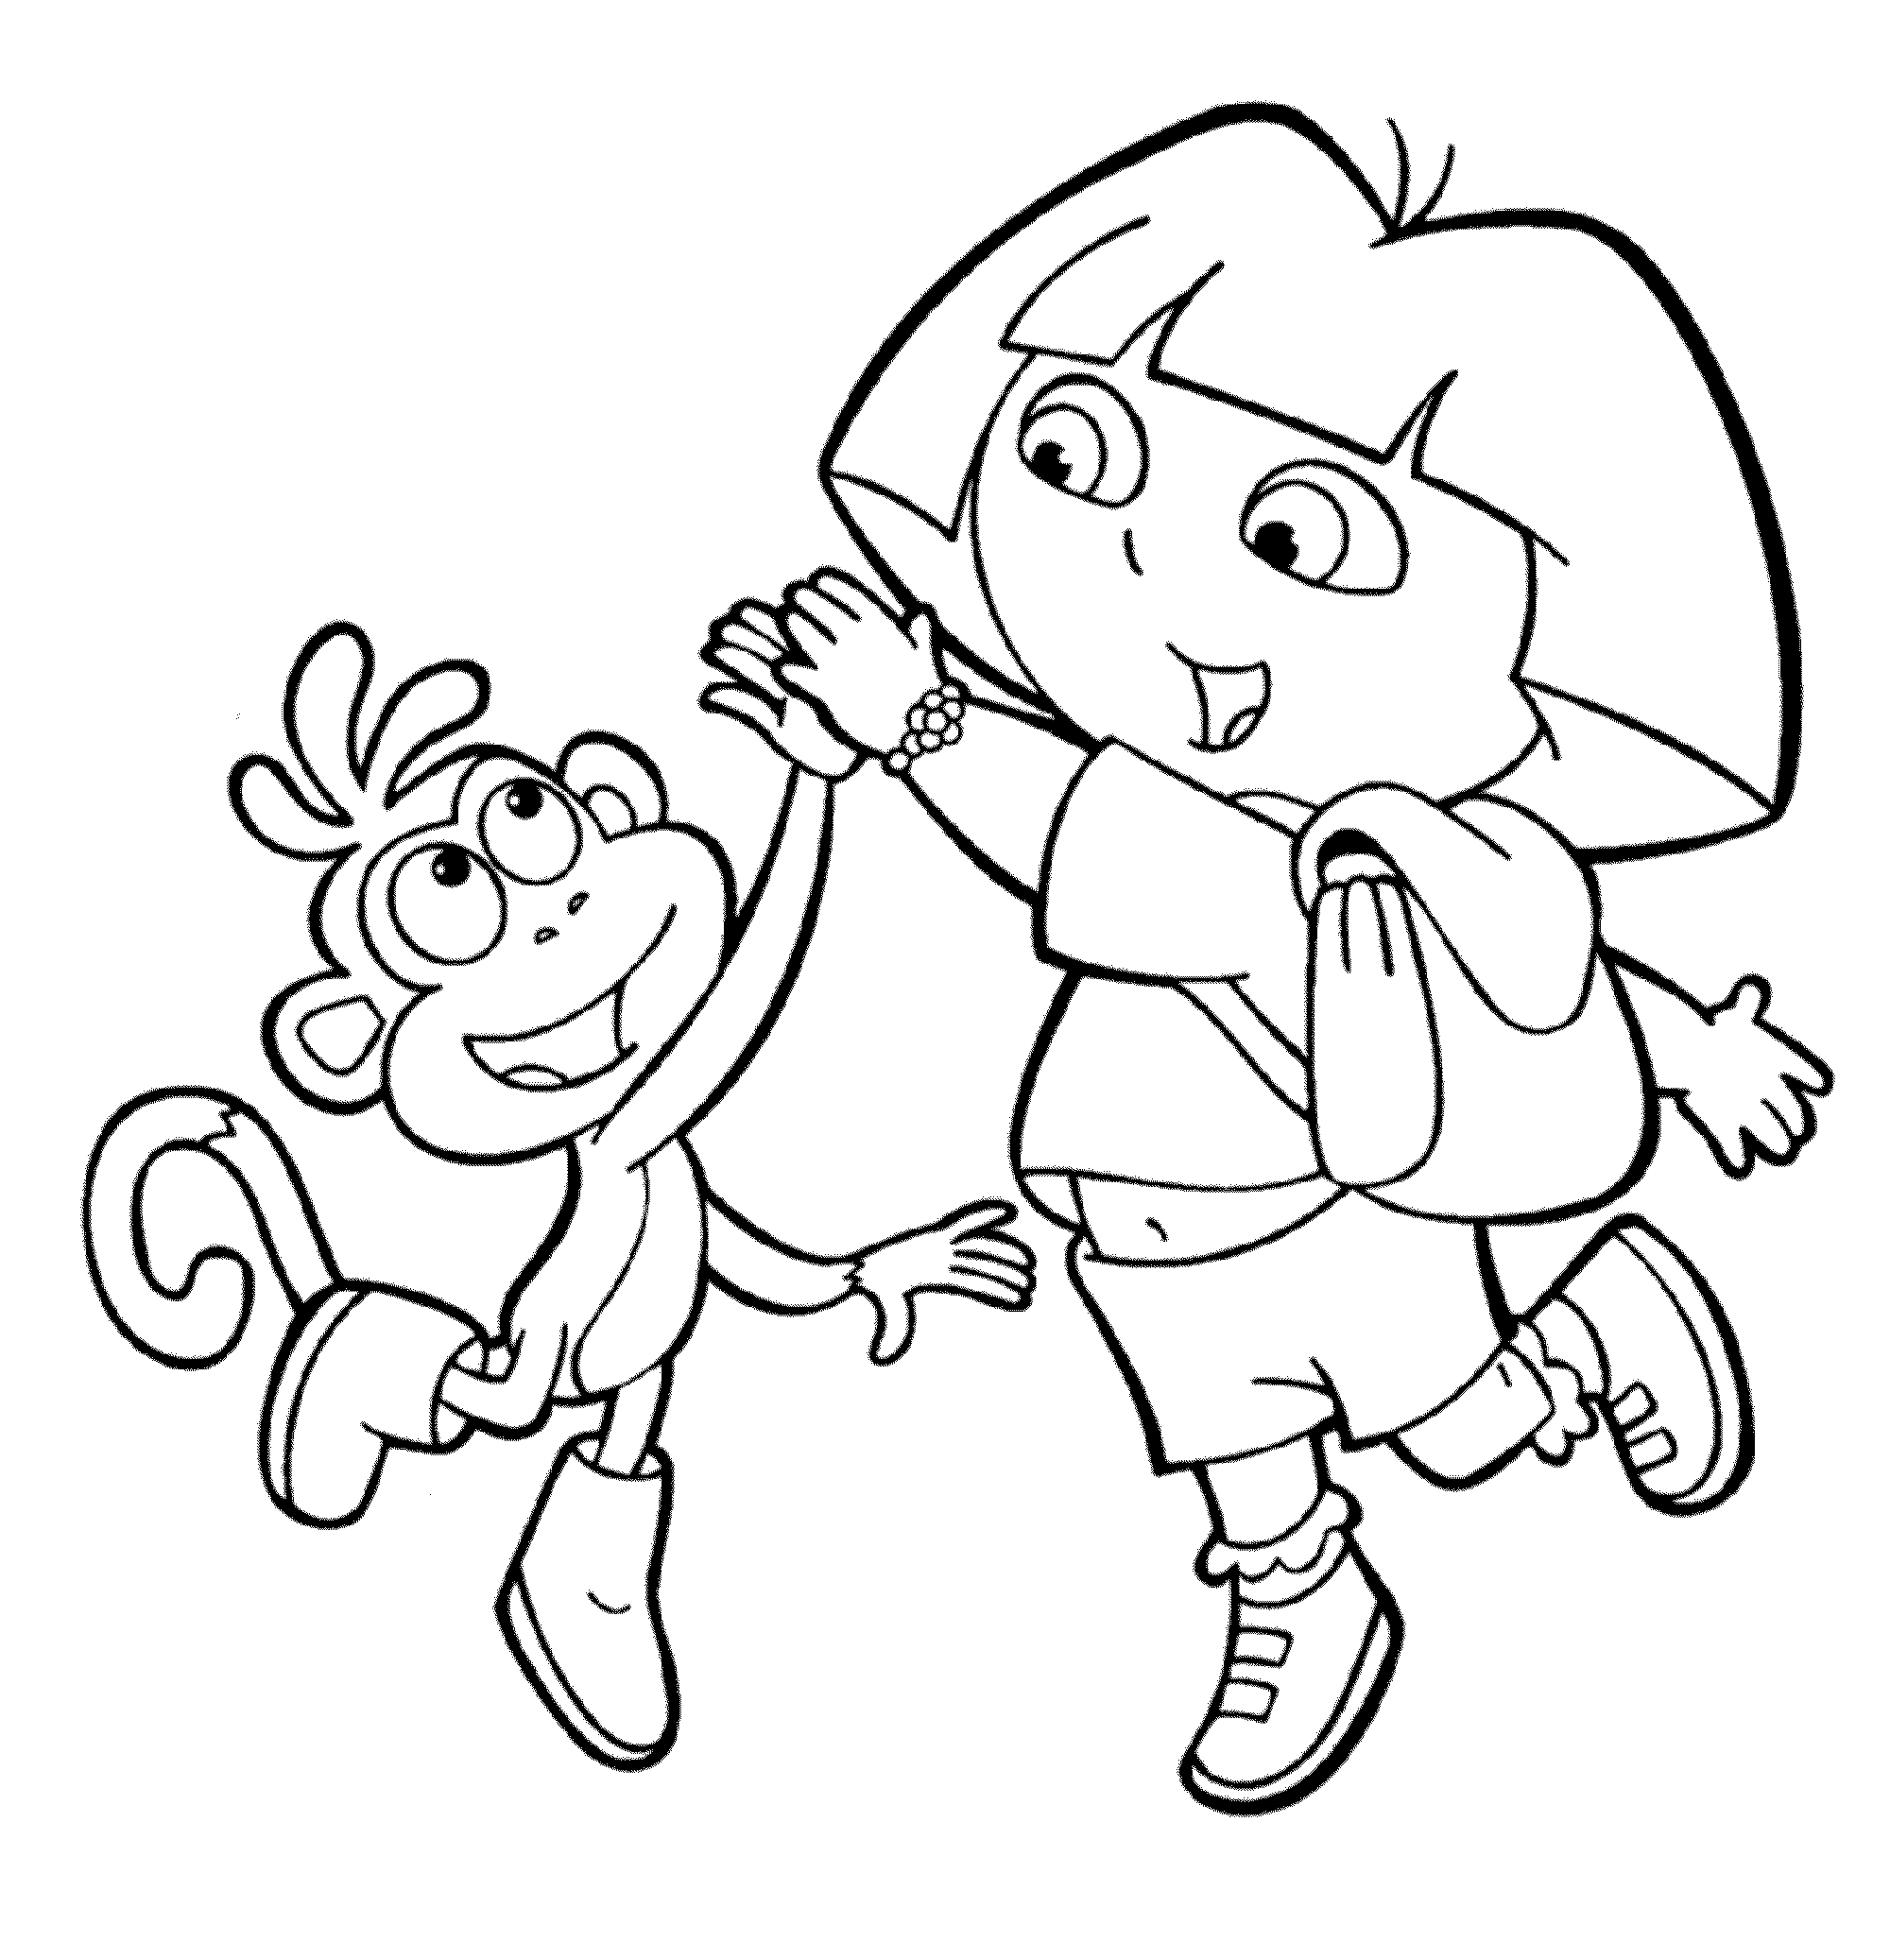 pictures of dora to color print download dora coloring pages to learn new things pictures dora to color of